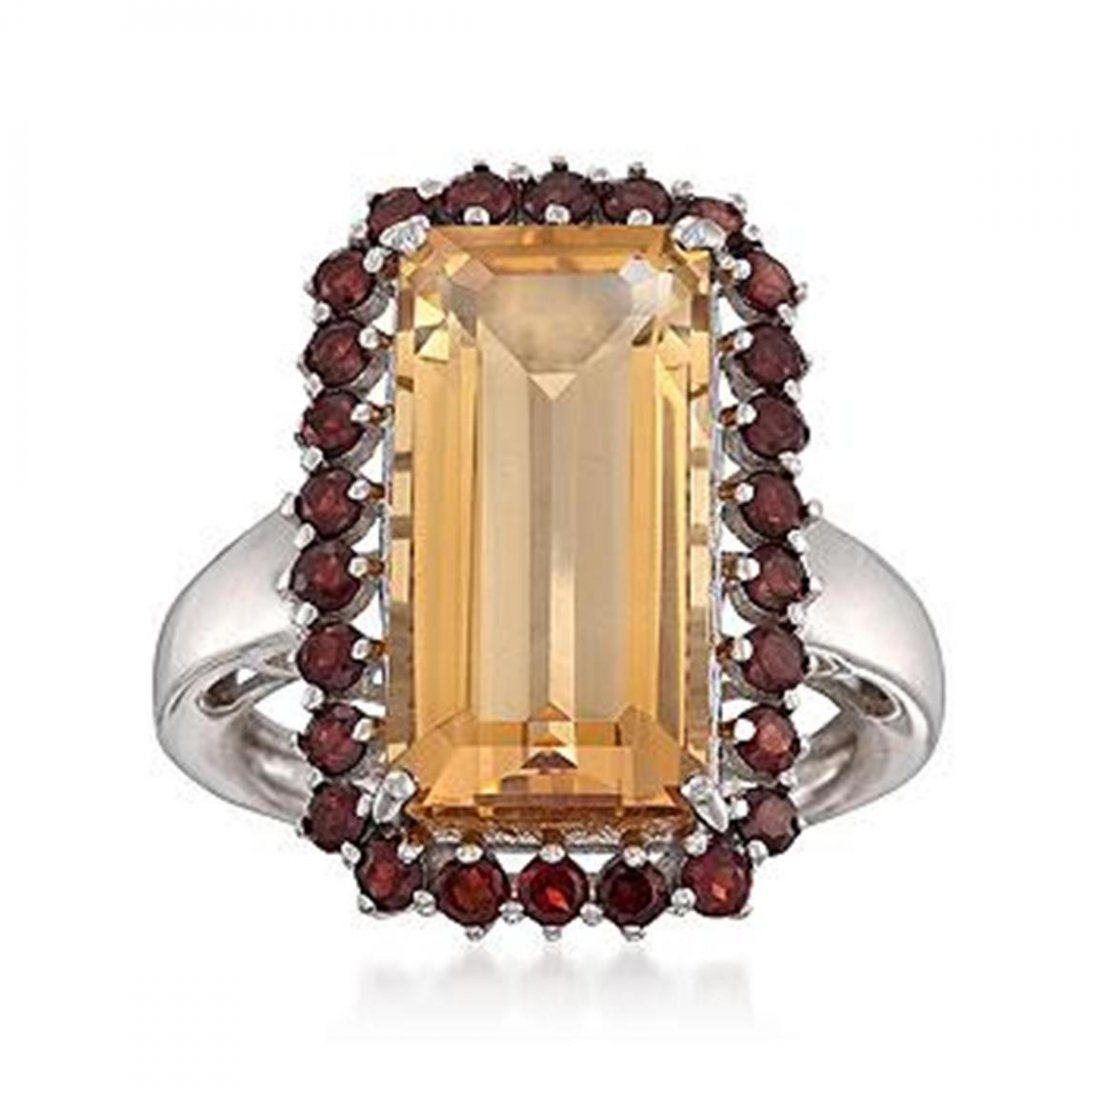 8.55 ct. t.w. Citrine and Garnet Ring in Sterling Silve